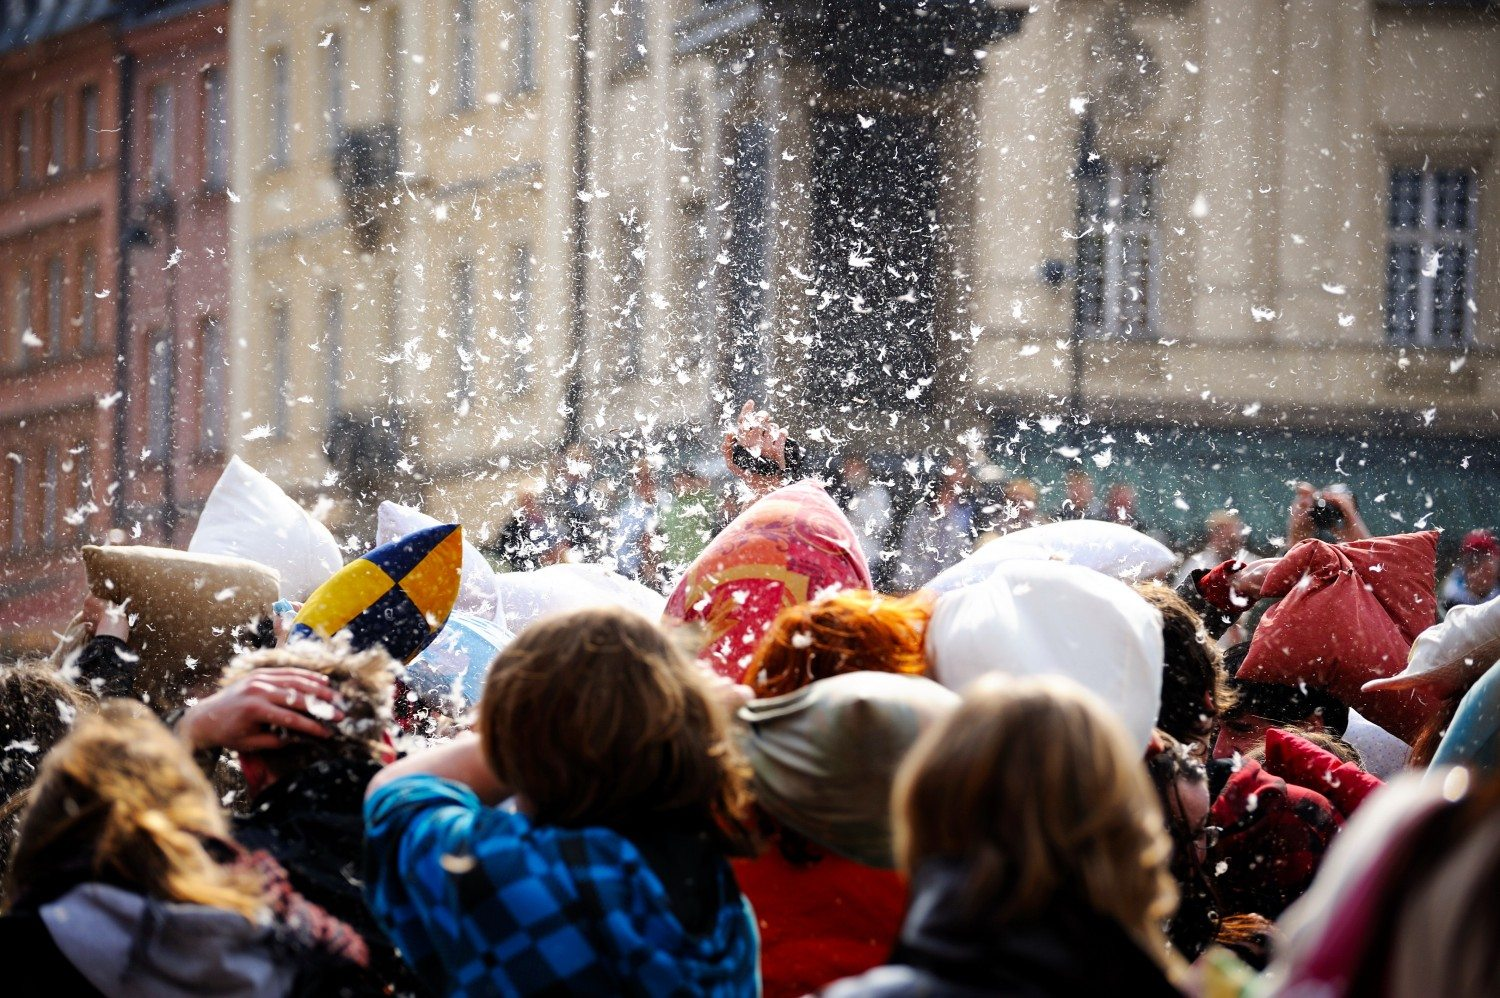 Warsaw_Pillow_Fight_2010_(4487955563)